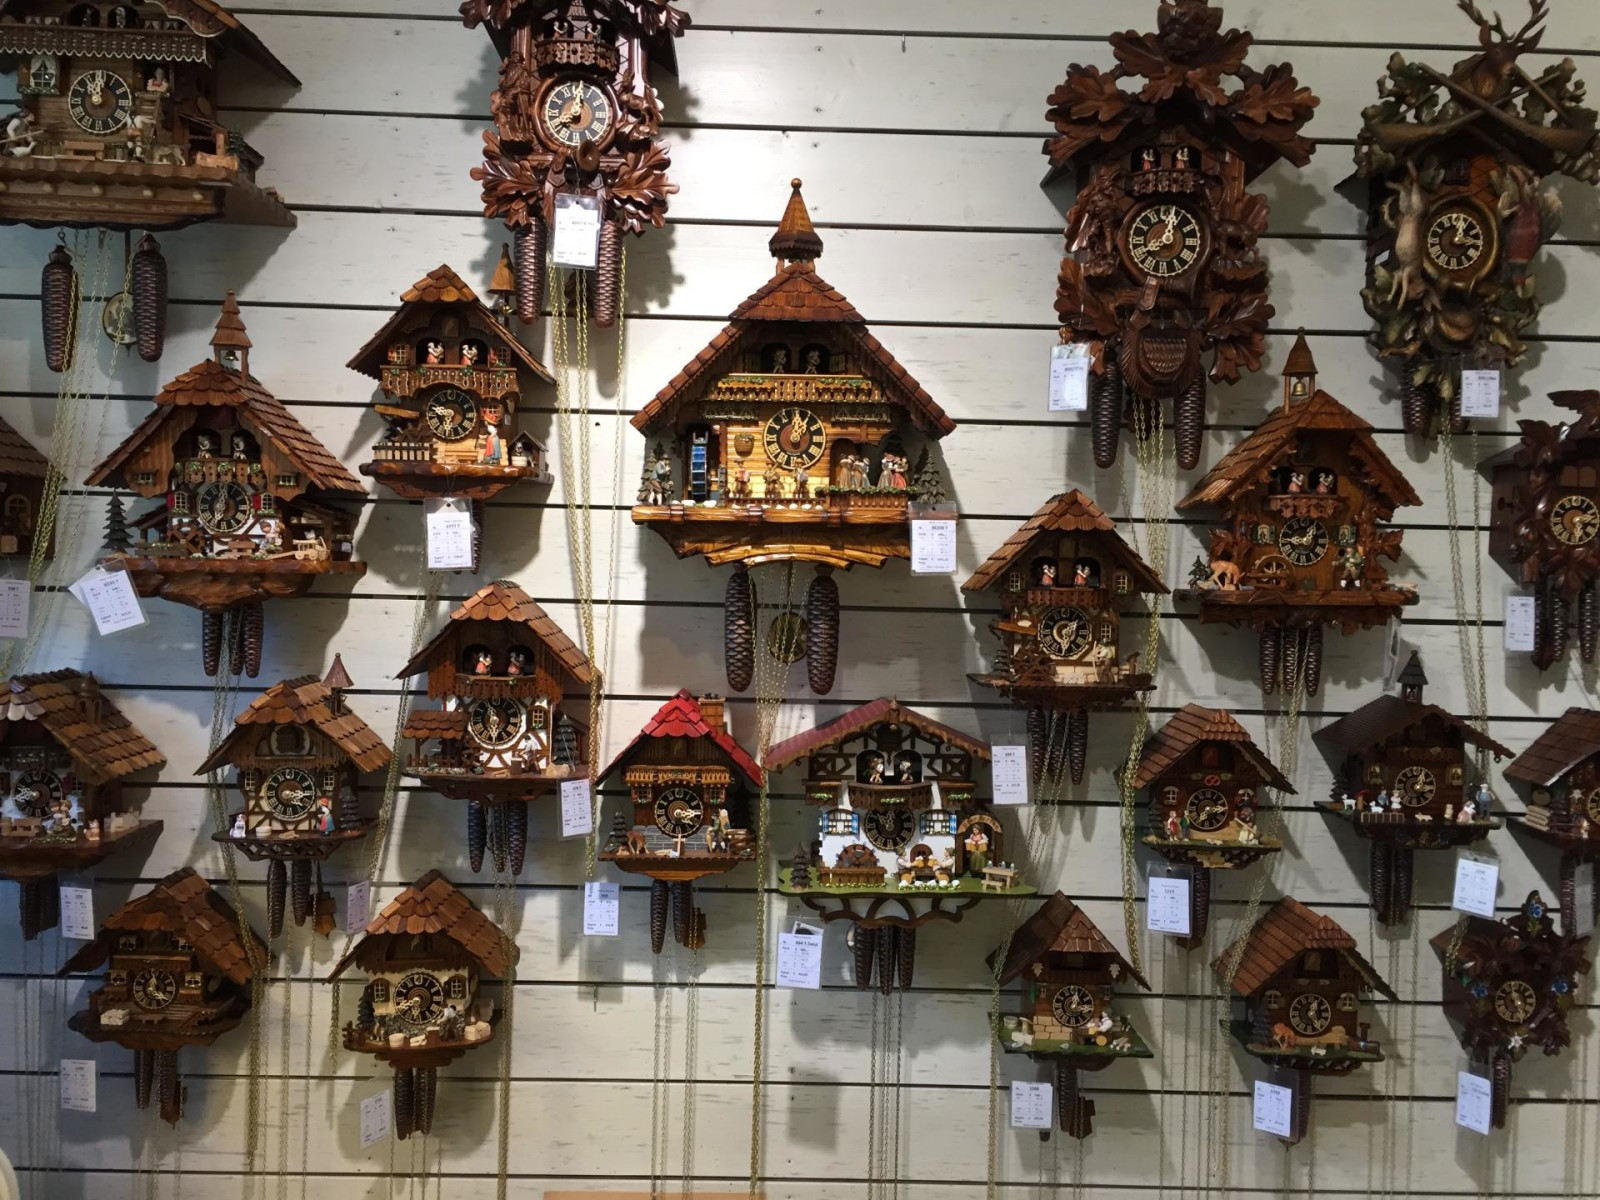 clocks in Oberammergau